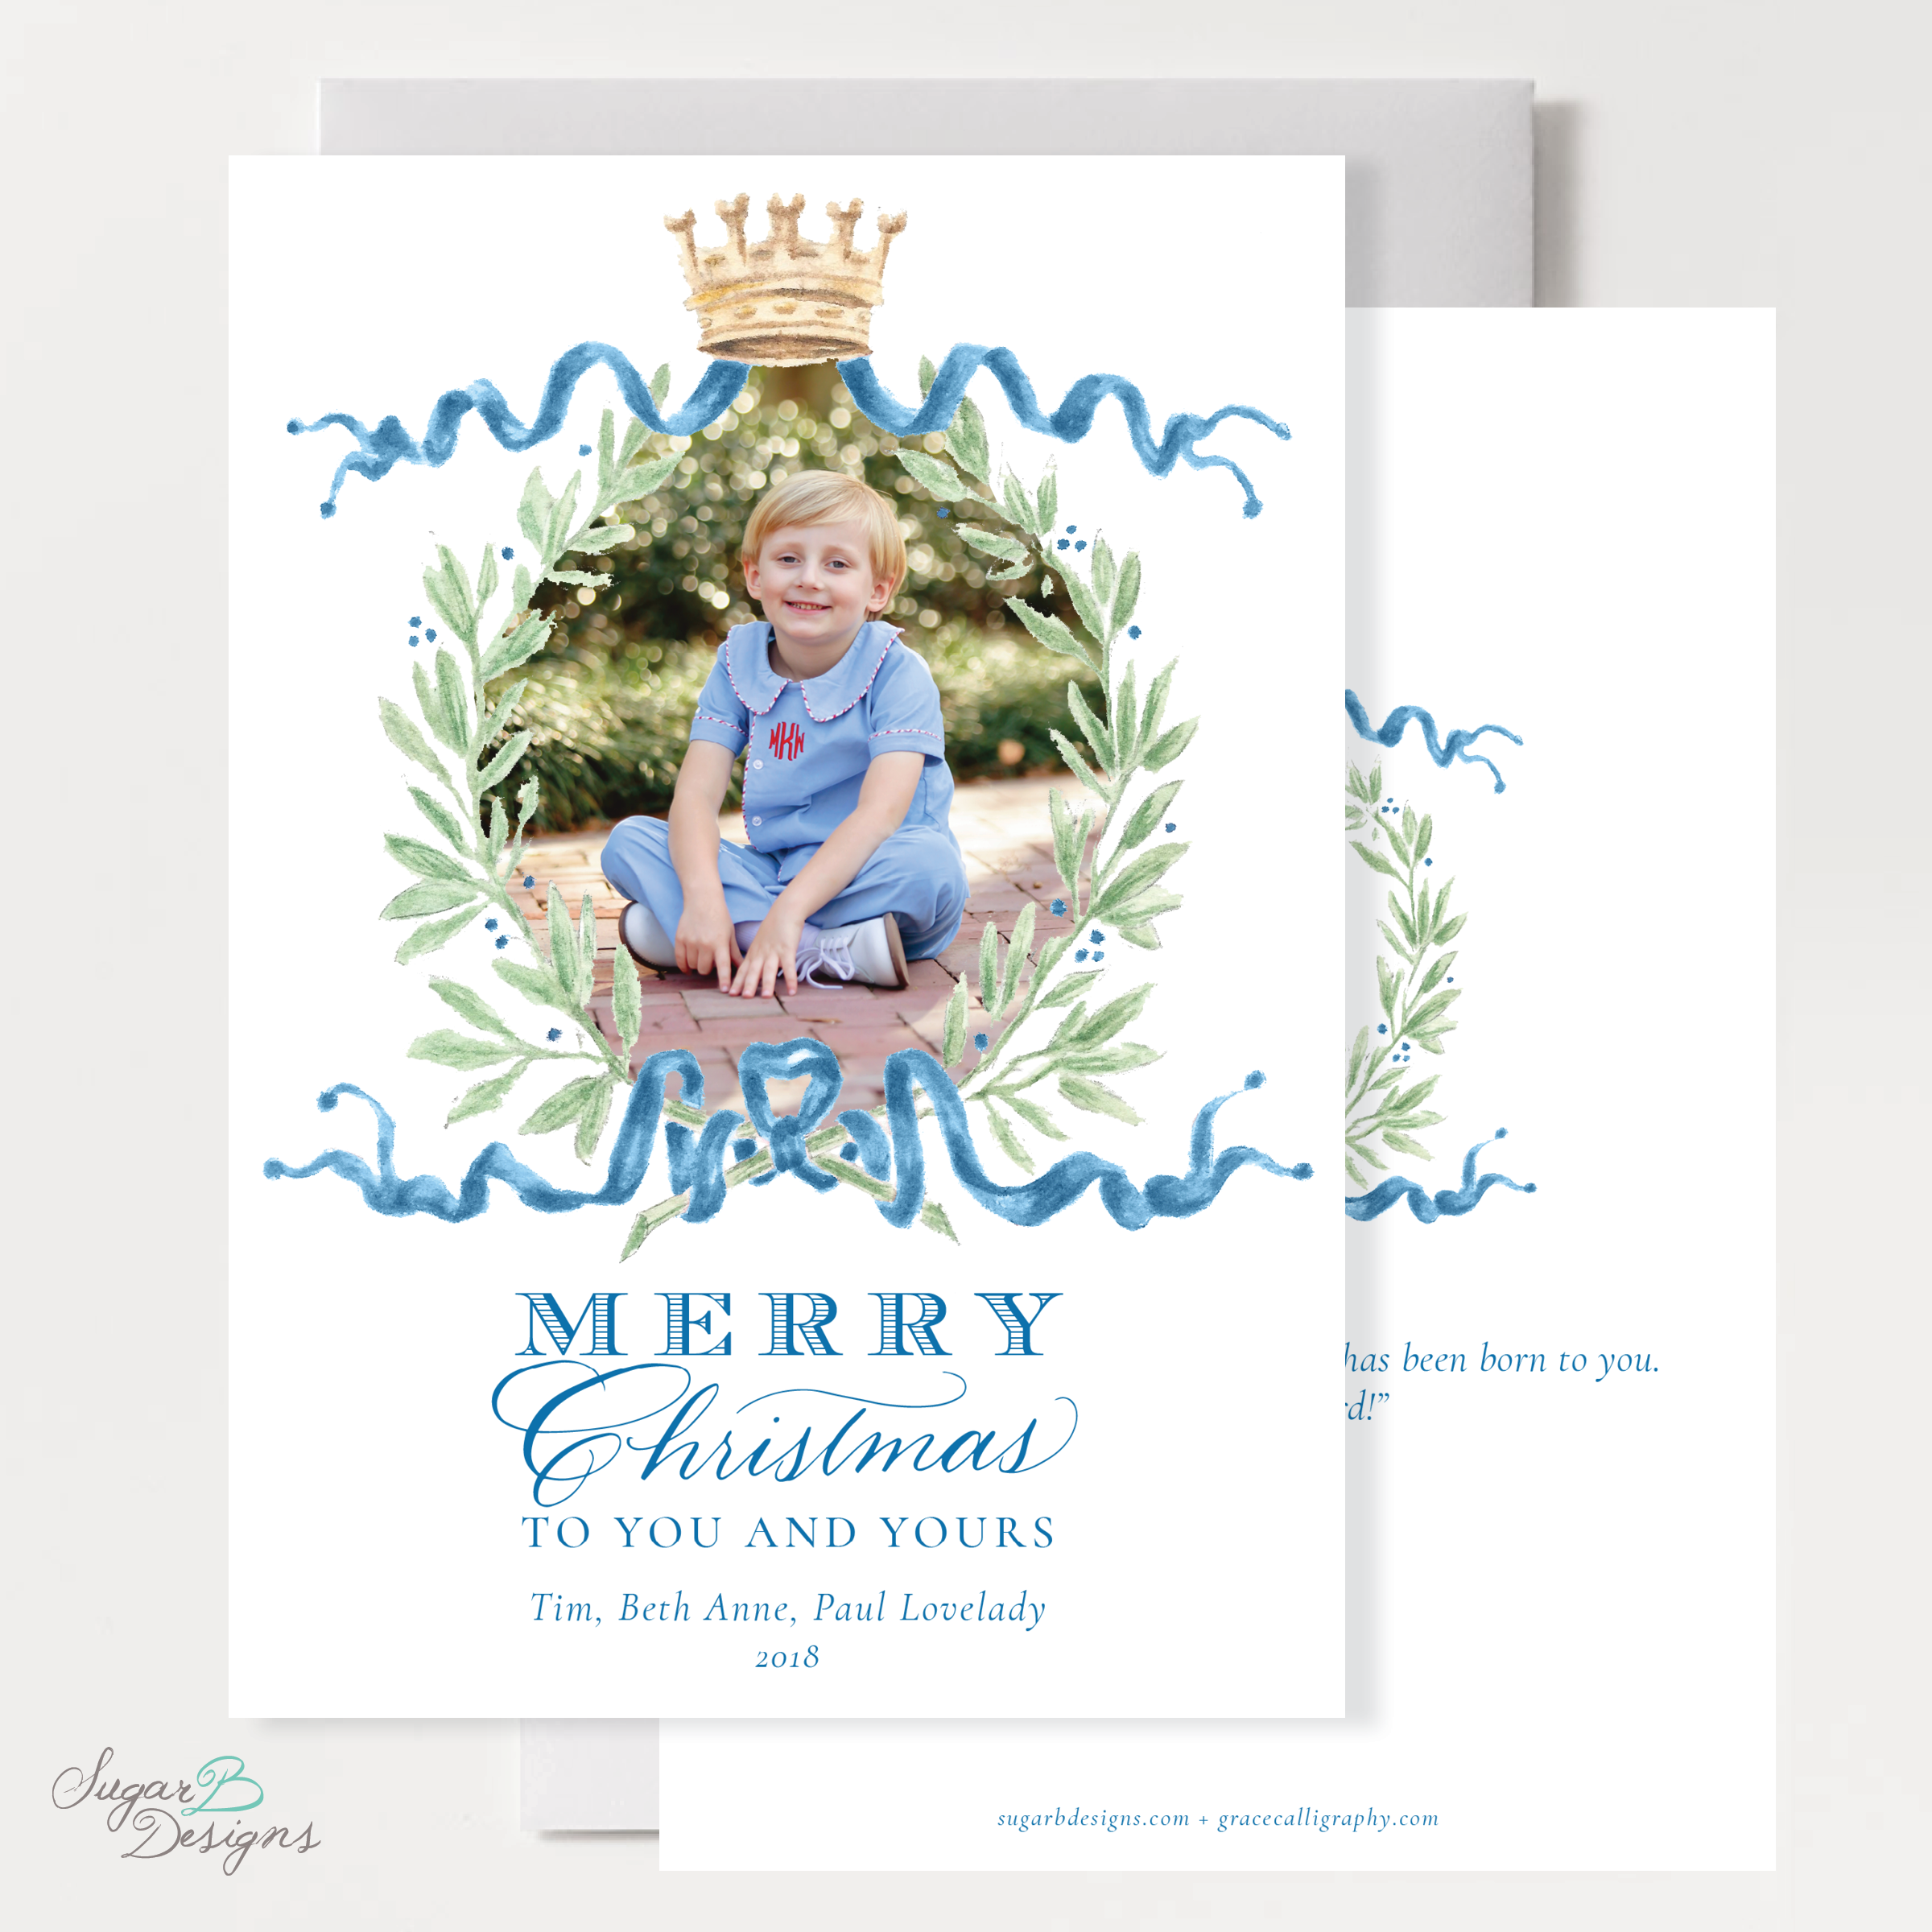 Royal Wreath Blue Christmas Card front + back by Sugar B Designs.png